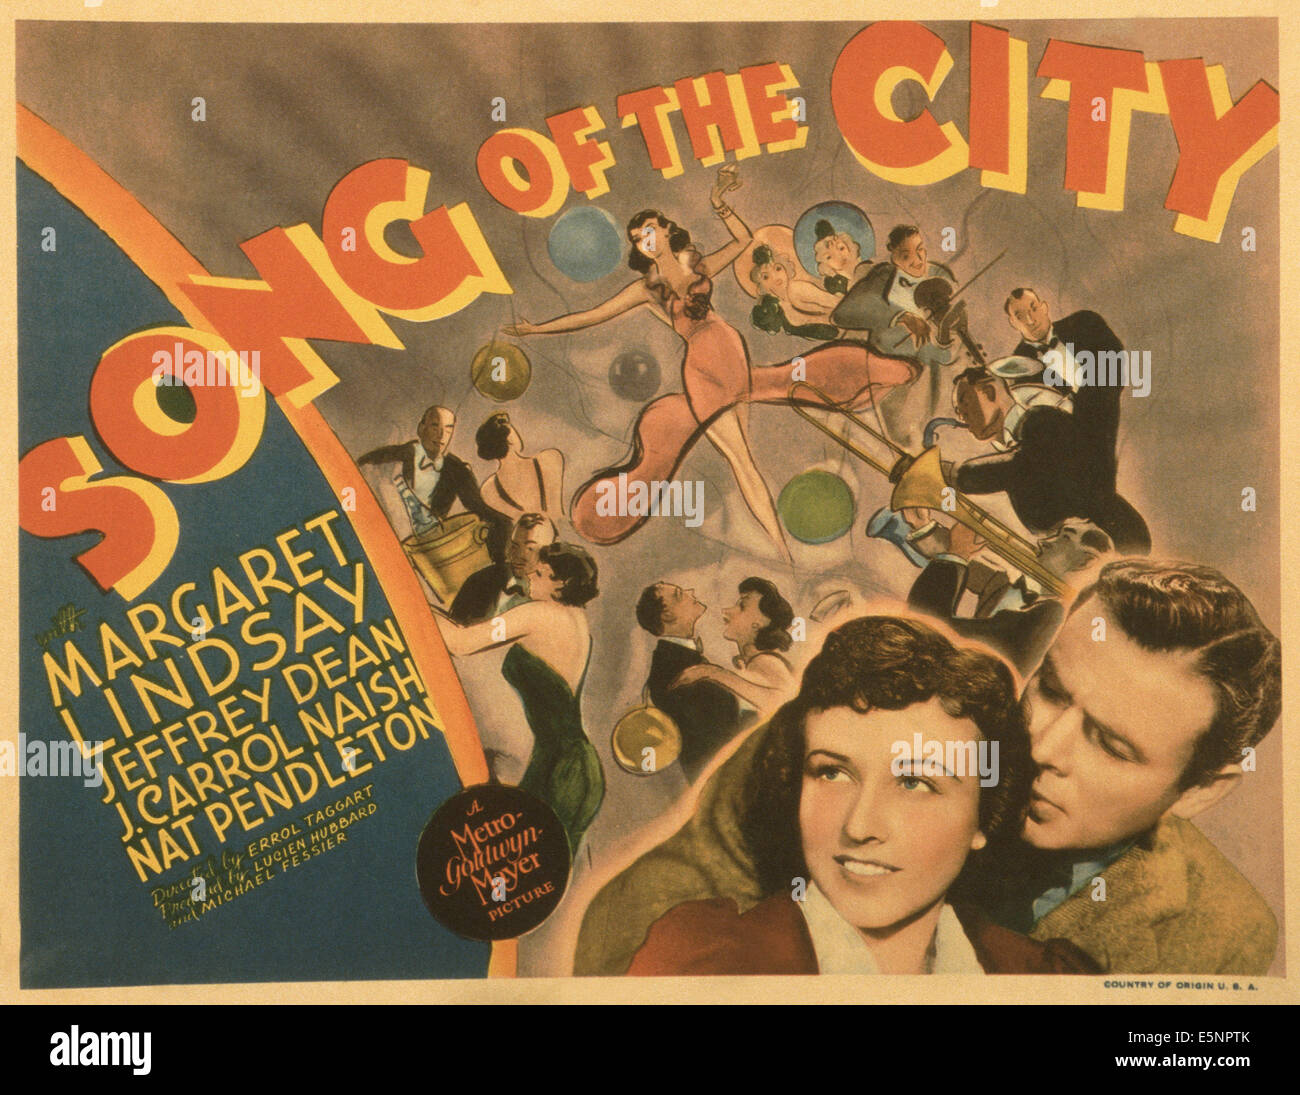 song-of-the-city-us-poster-from-left-mar